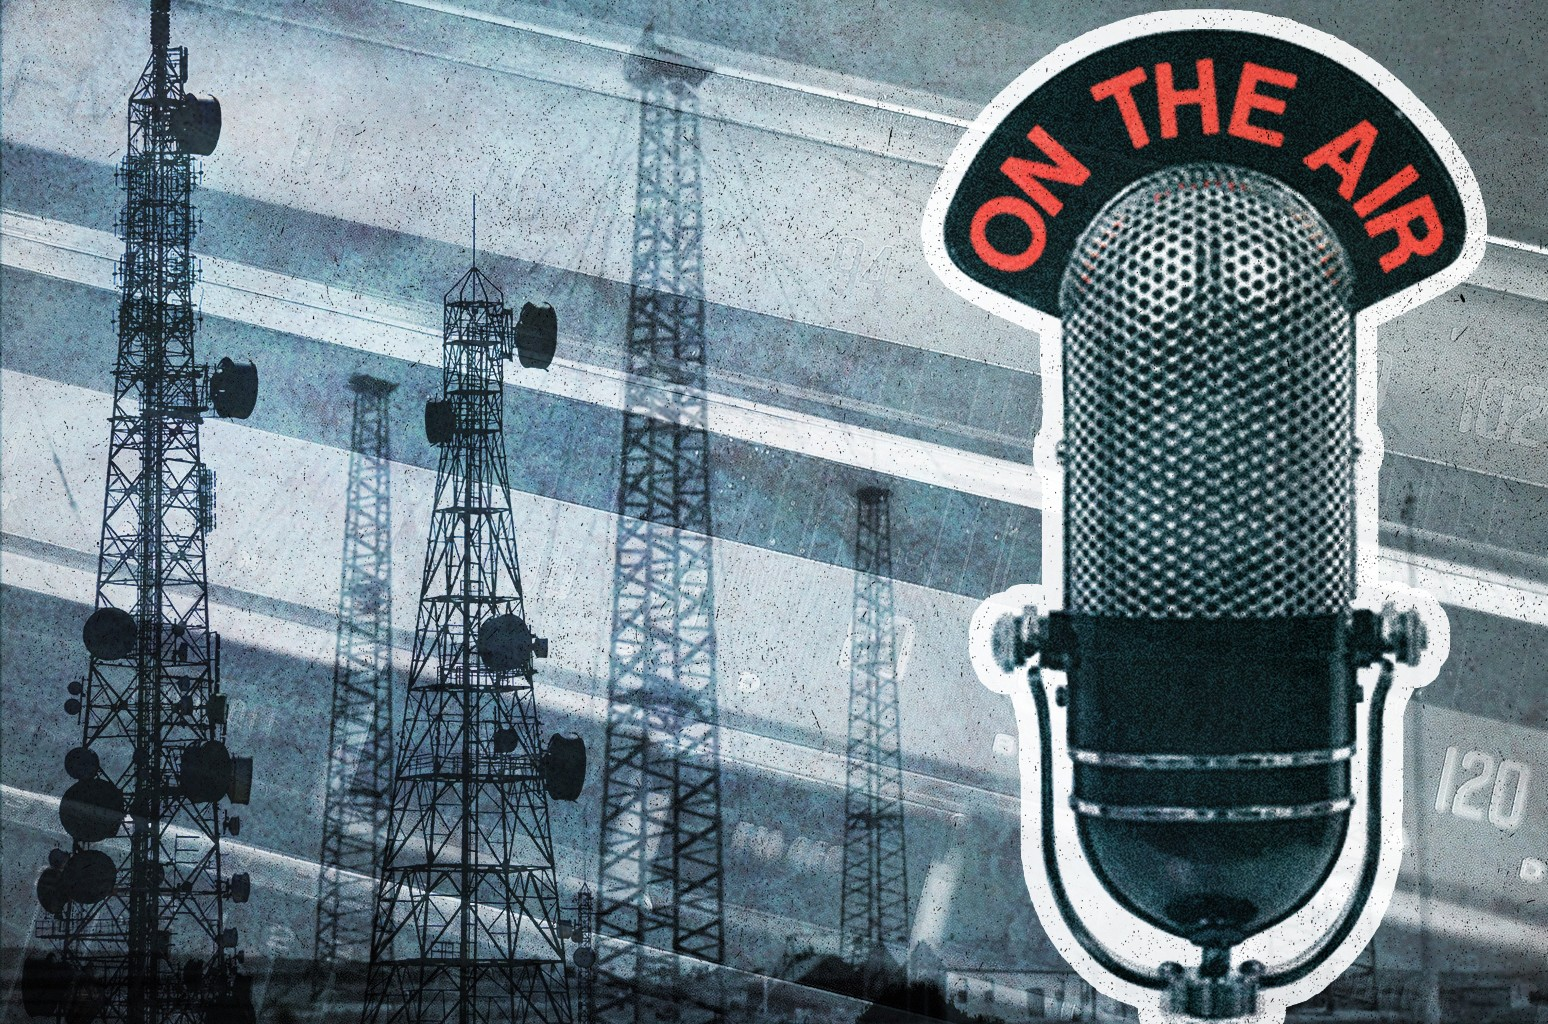 state-of-radio-photo-illo-2019-billboard-1548